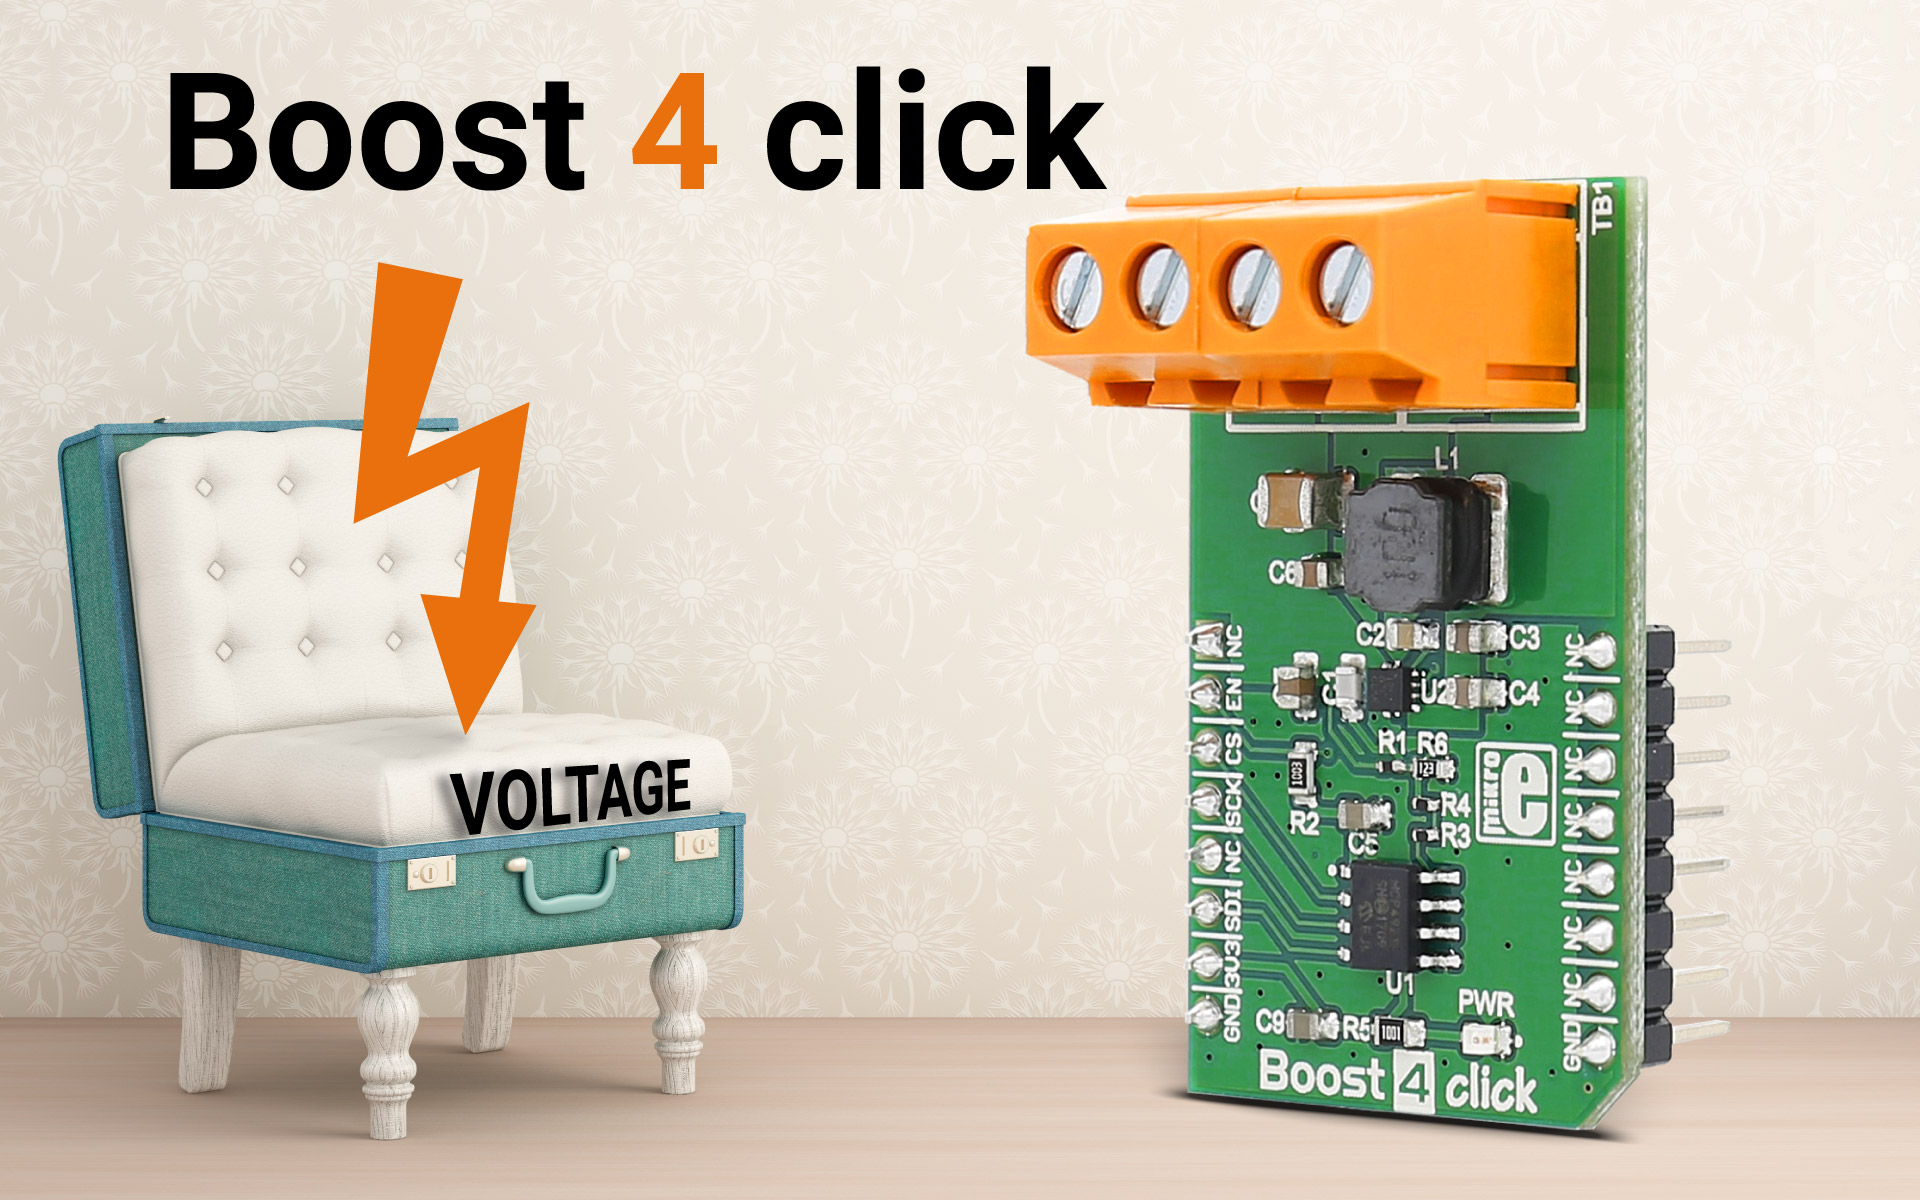 Boost 4 click - the power management solution for your next project